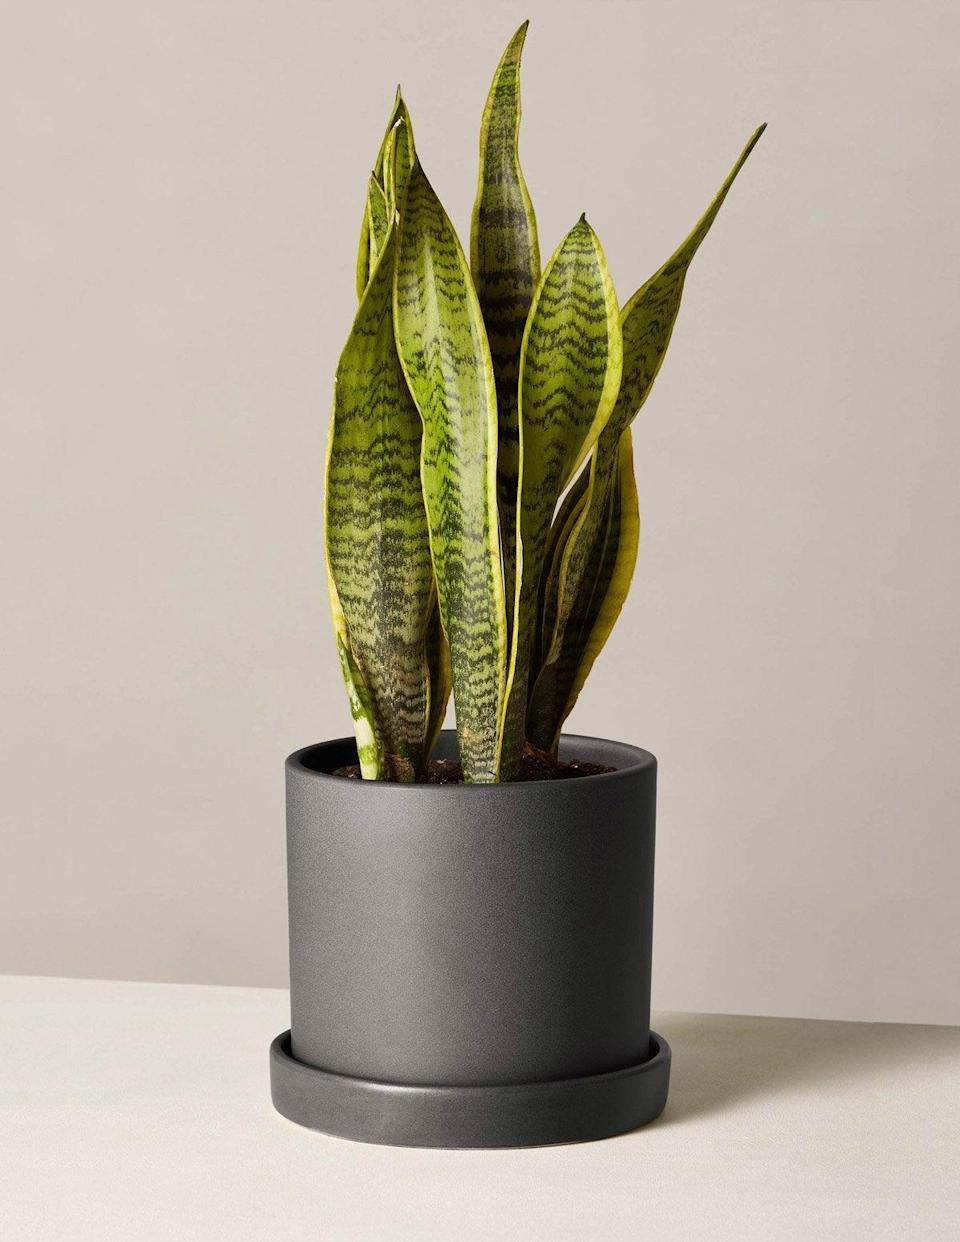 """<h3>Sansevieria</h3><br>Also known as the snake plant, Sansevieria is an air purifying plant that comes highly recommended by both Mast and Gallagher. """"This plant is great for narrow spaces and does most of its work at night converting carbon dioxide to oxygen and can help you sleep better,"""" explains Mast. """"It's one of the most popular options for improving air quality.""""<br><br>The Bloomscape expert says she loves recommending Sansevieria because it's versatile, easy to care for, and adaptable to varied environments. """"It's able to thrive in direct sun and adapts quite nicely to the lower light areas of your home,"""" she points out.<br><br>Because it's native to the arid deserts of West Africa, it doesn't require much water — especially in the winter — so it's a great option for beginners or those more forgetful plant owners. """"Snake plants are extremely hardy — in other words, good for those who don't have a green thumb,"""" Gallagher advises. """"Just don't overwater."""" According to Mast, """"Overwatering can cause the plant to rot, so be sure to keep the leaves dry when watering."""" She recommends moistening the soil around the edge of the pot, instead of in the center of the leaves. Additionally, you should let the soil dry out between waterings.<br><br><em>Shop</em> <strong><em><a href=""""http://thesill.com"""" rel=""""nofollow noopener"""" target=""""_blank"""" data-ylk=""""slk:The Sill"""" class=""""link rapid-noclick-resp"""">The Sill</a></em></strong><br><br><strong>The Sill</strong> Snake Plant Laurentii, $, available at <a href=""""https://go.skimresources.com/?id=30283X879131&url=https%3A%2F%2Fwww.thesill.com%2Fproducts%2Fsnake-plant-laurentii"""" rel=""""nofollow noopener"""" target=""""_blank"""" data-ylk=""""slk:The Sill"""" class=""""link rapid-noclick-resp"""">The Sill</a><br><br><strong>Bloomscape</strong> 3-Foot-Tall Potted Sansevieria, $, available at <a href=""""https://go.skimresources.com/?id=30283X879131&url=https%3A%2F%2Fbloomscape.com%2Fproduct%2Fsansevieria%2F"""" rel=""""nofollow noopener"""" target=""""_blank"""" data-ylk=""""slk:B"""